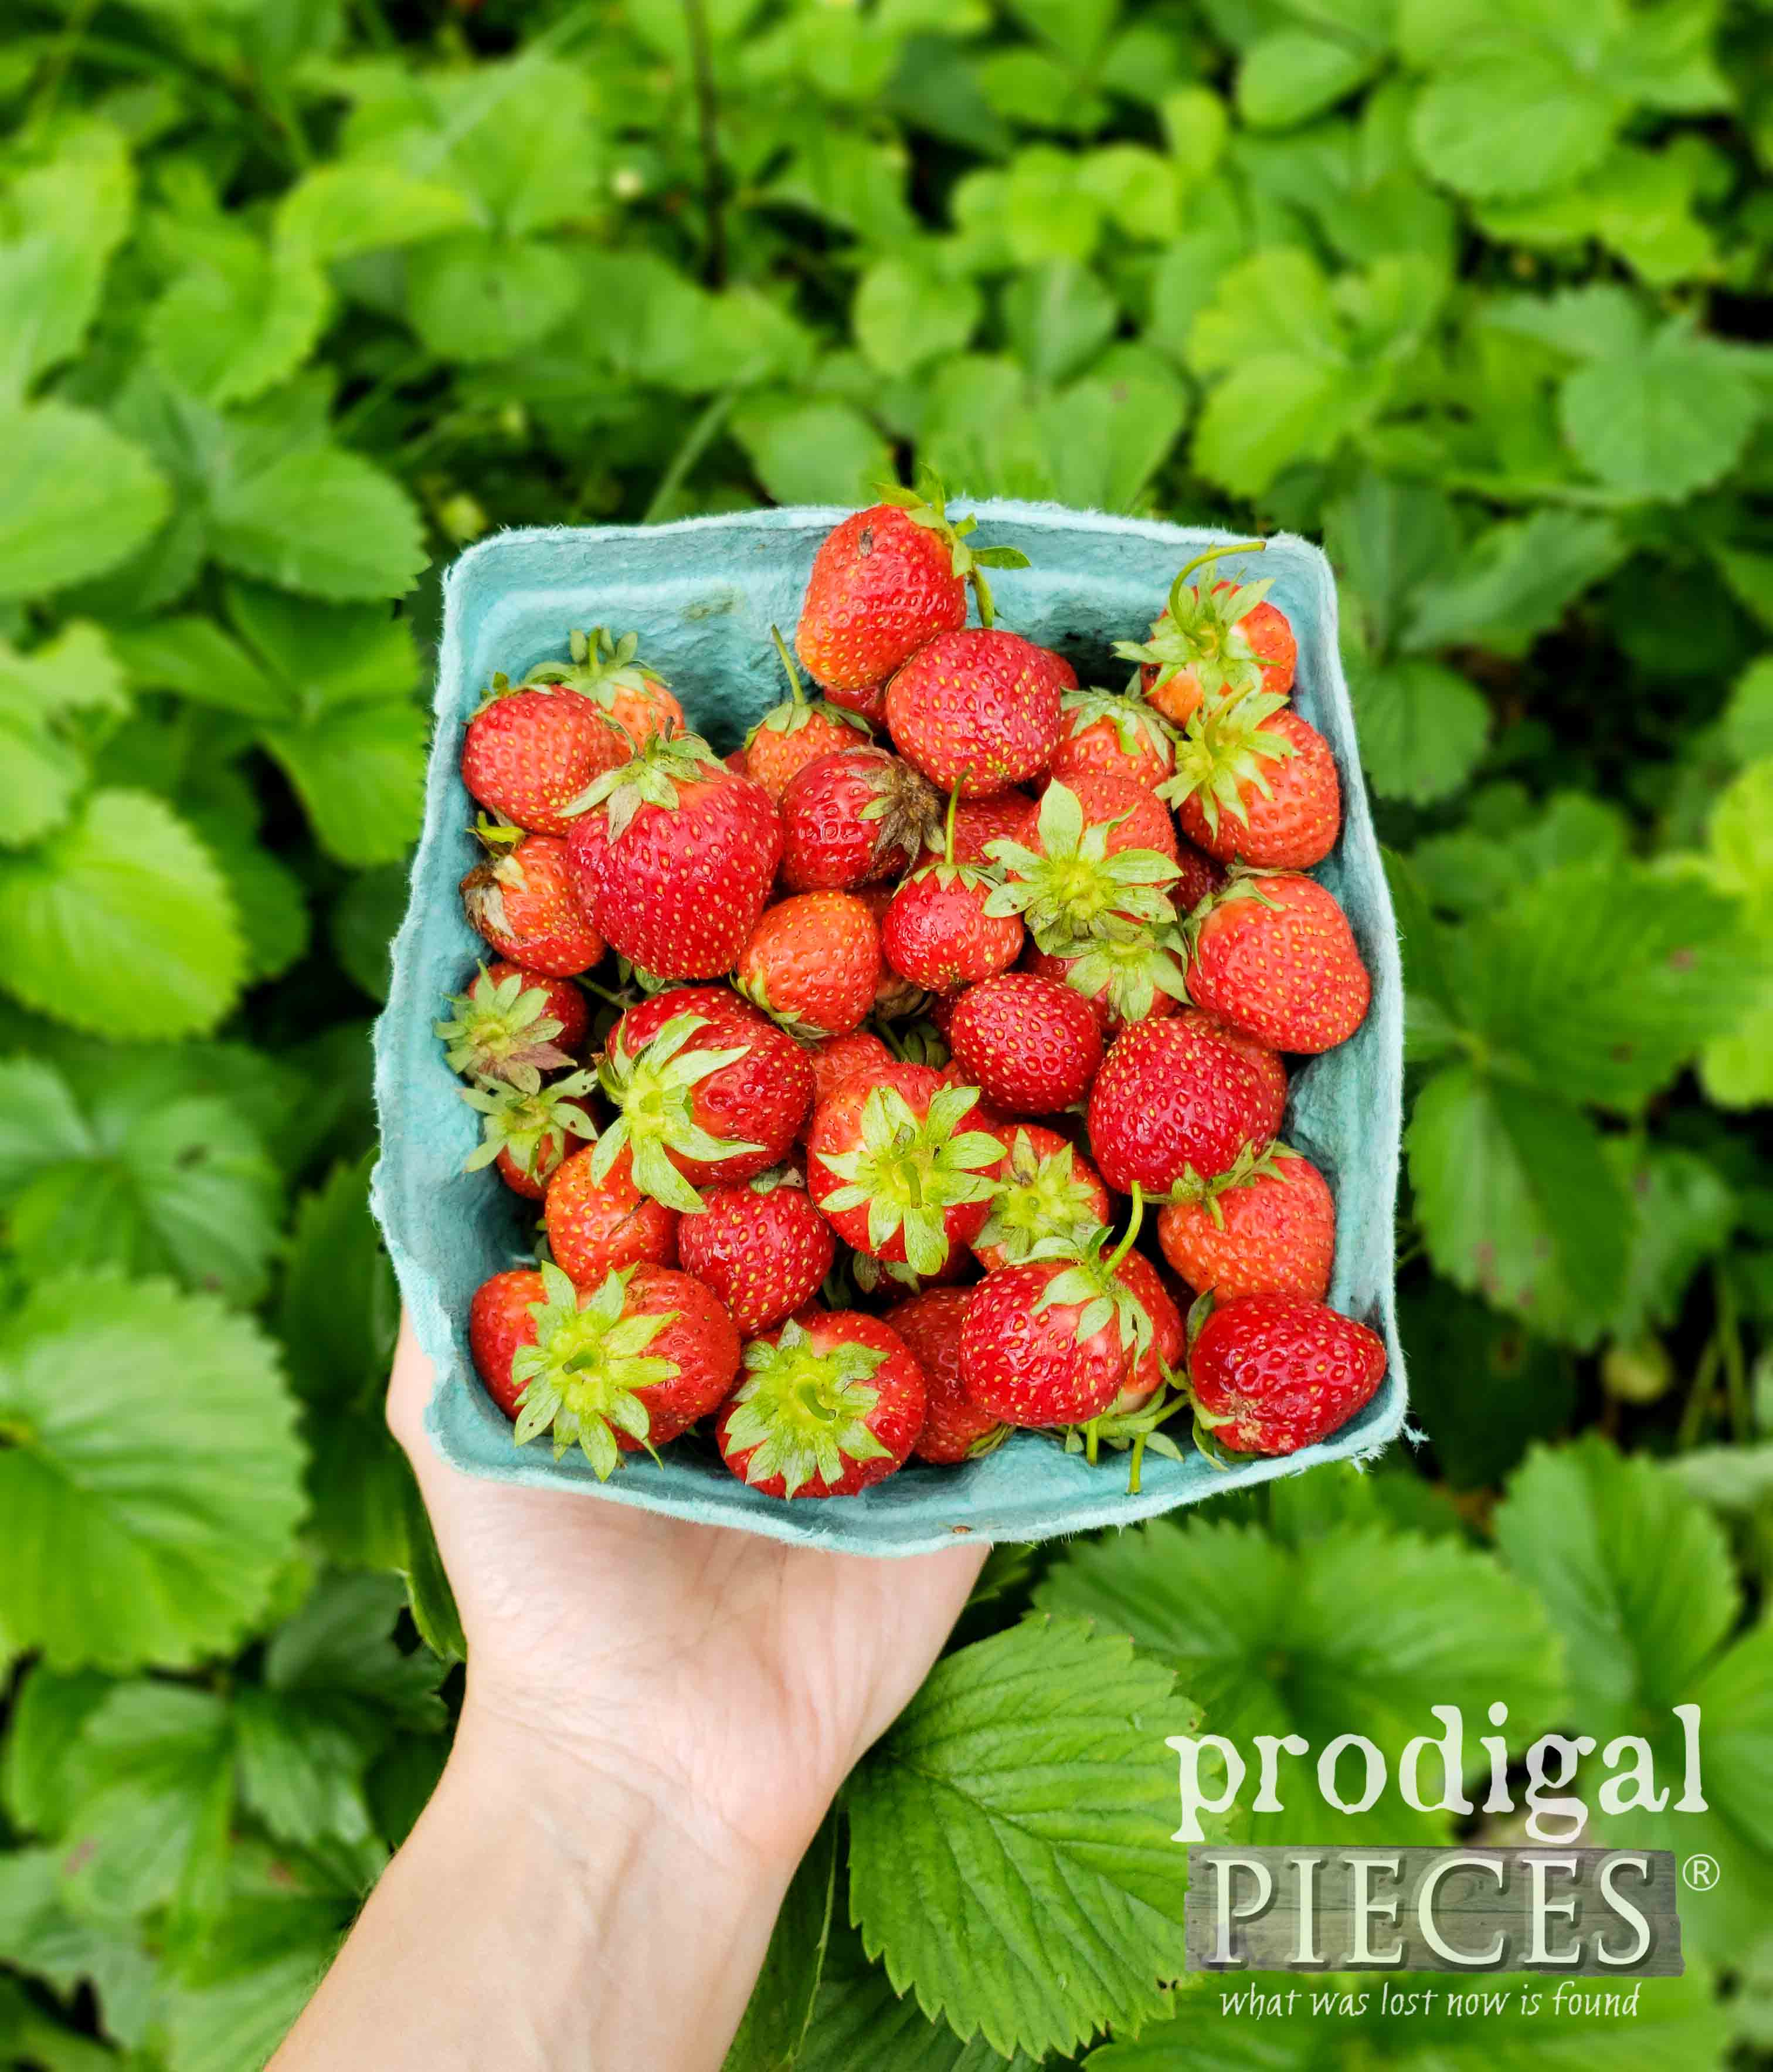 Homegrown Organic Strawberries are the best! | prodigalpieces.com #prodigalpieces #garden #food